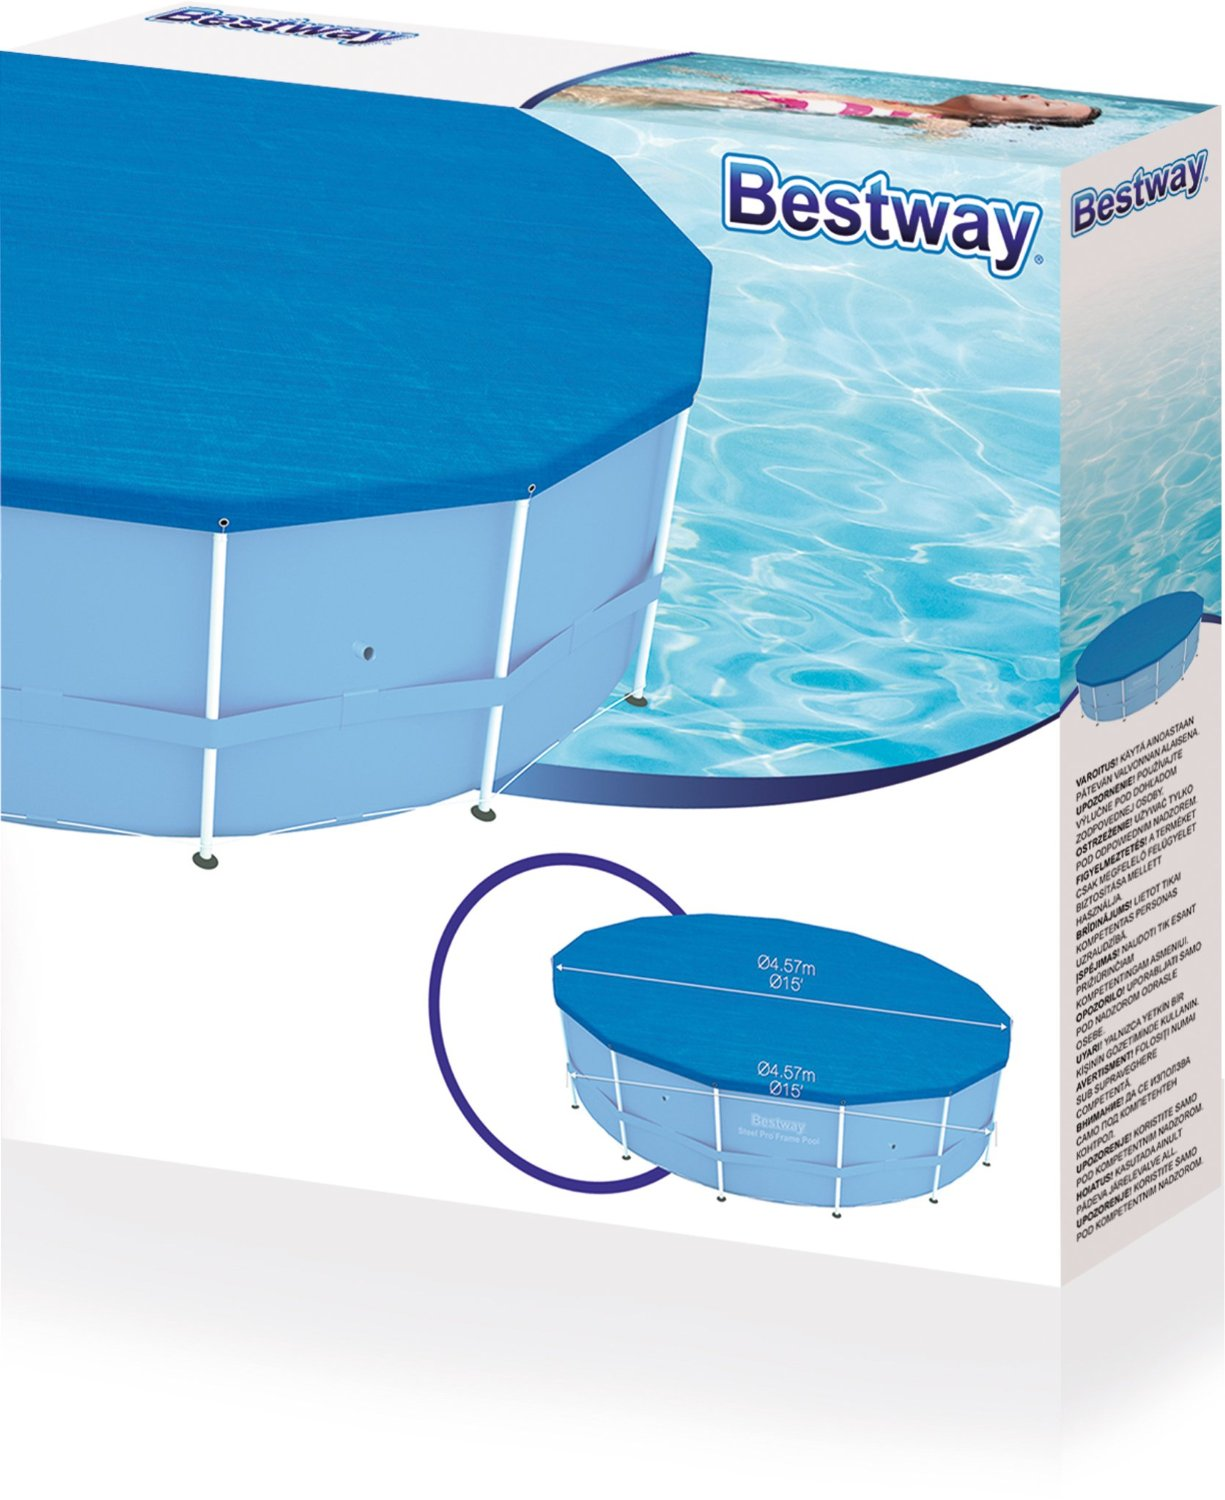 bestway pool abdeckung sch tzer f r stahlrahmen schwimmbad 4 5m passungen. Black Bedroom Furniture Sets. Home Design Ideas